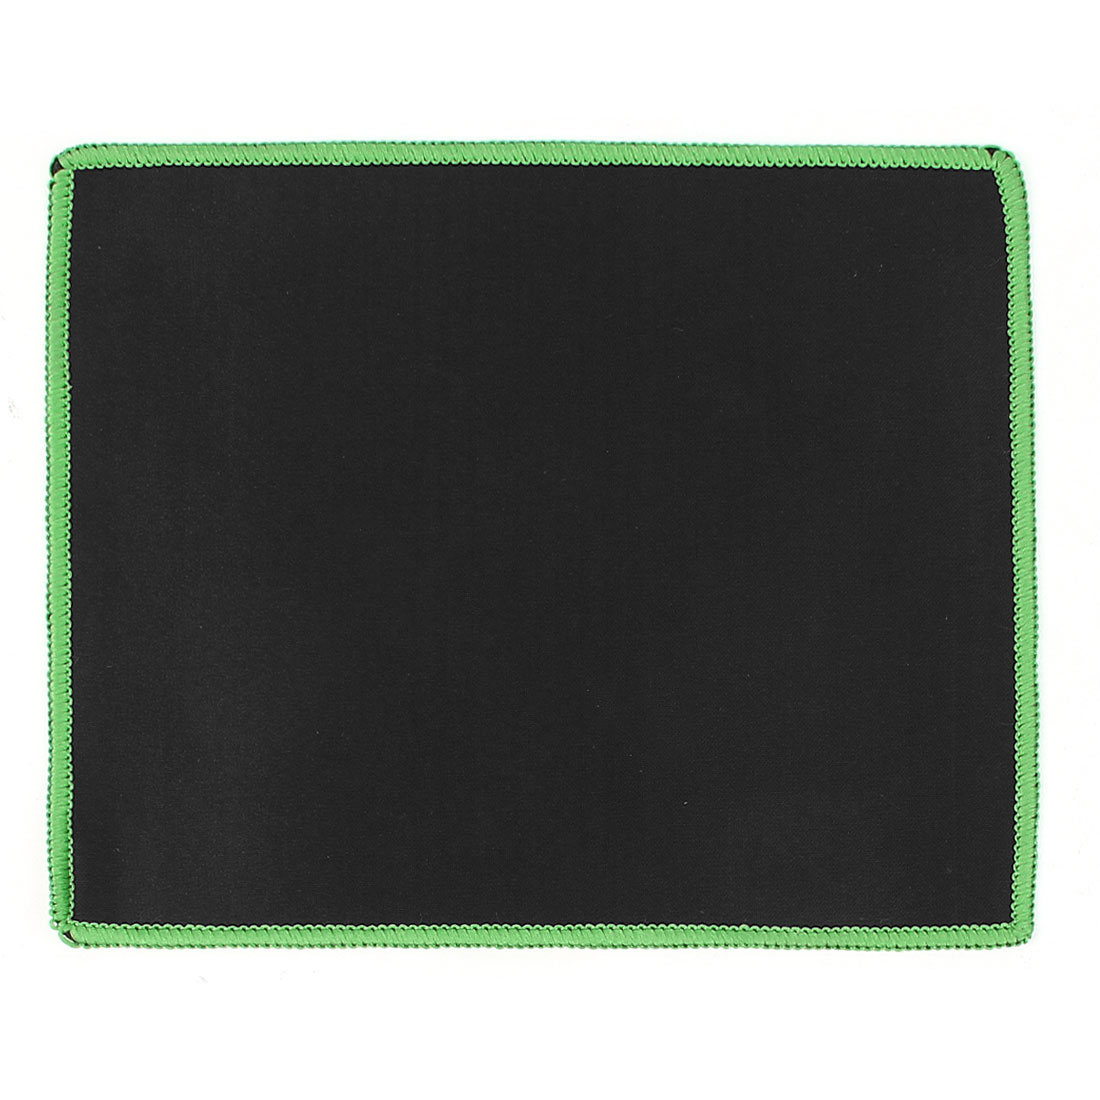 Black Green 25x21cm Rectangle Nonslip Neoprene Desktop Gaming Mouse Pad Mice Mat